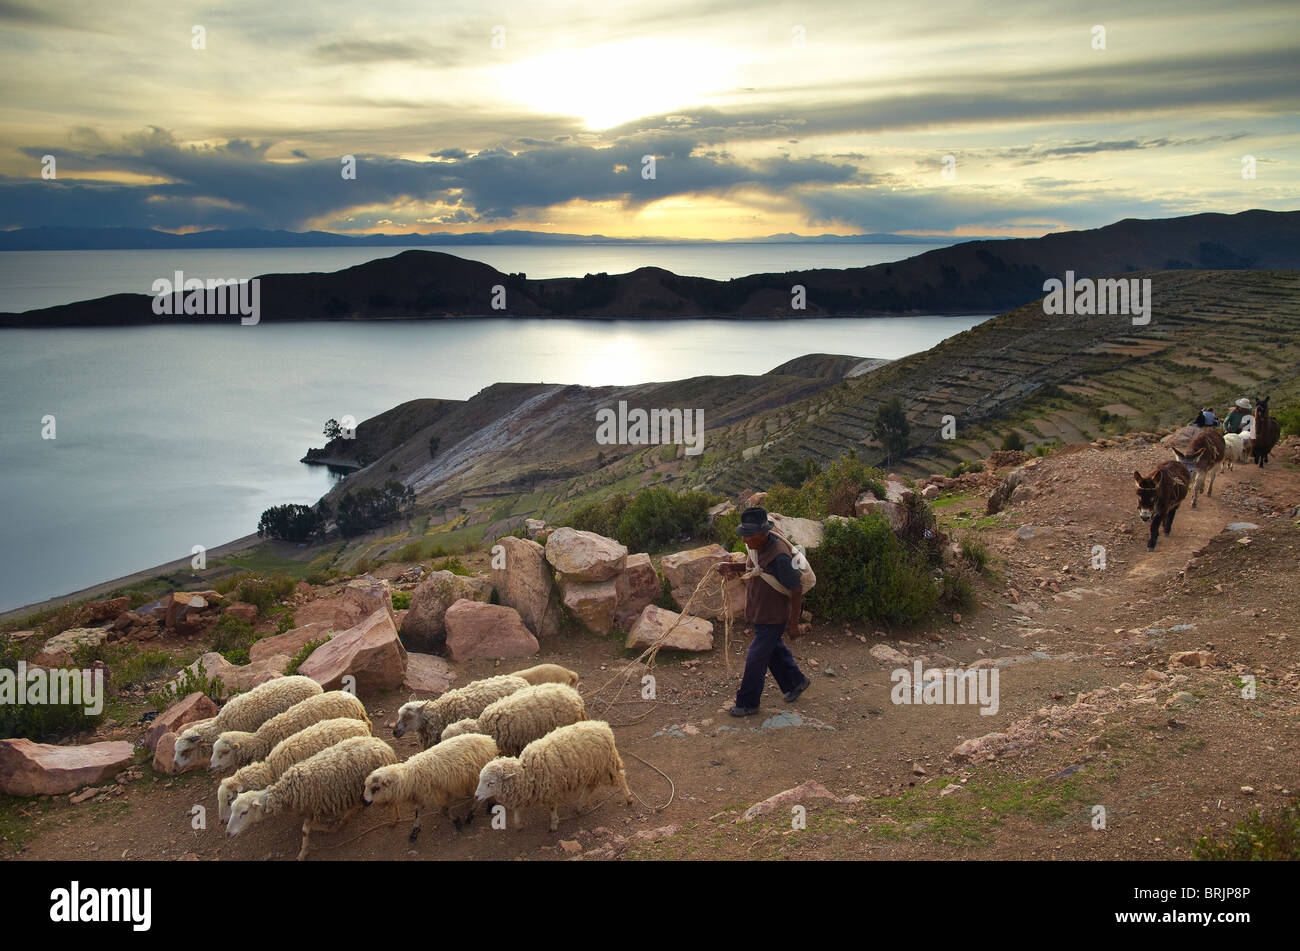 Un agriculteur avec son mouton sur l'Isla del Sol, le Lac Titicaca, en Bolivie Photo Stock